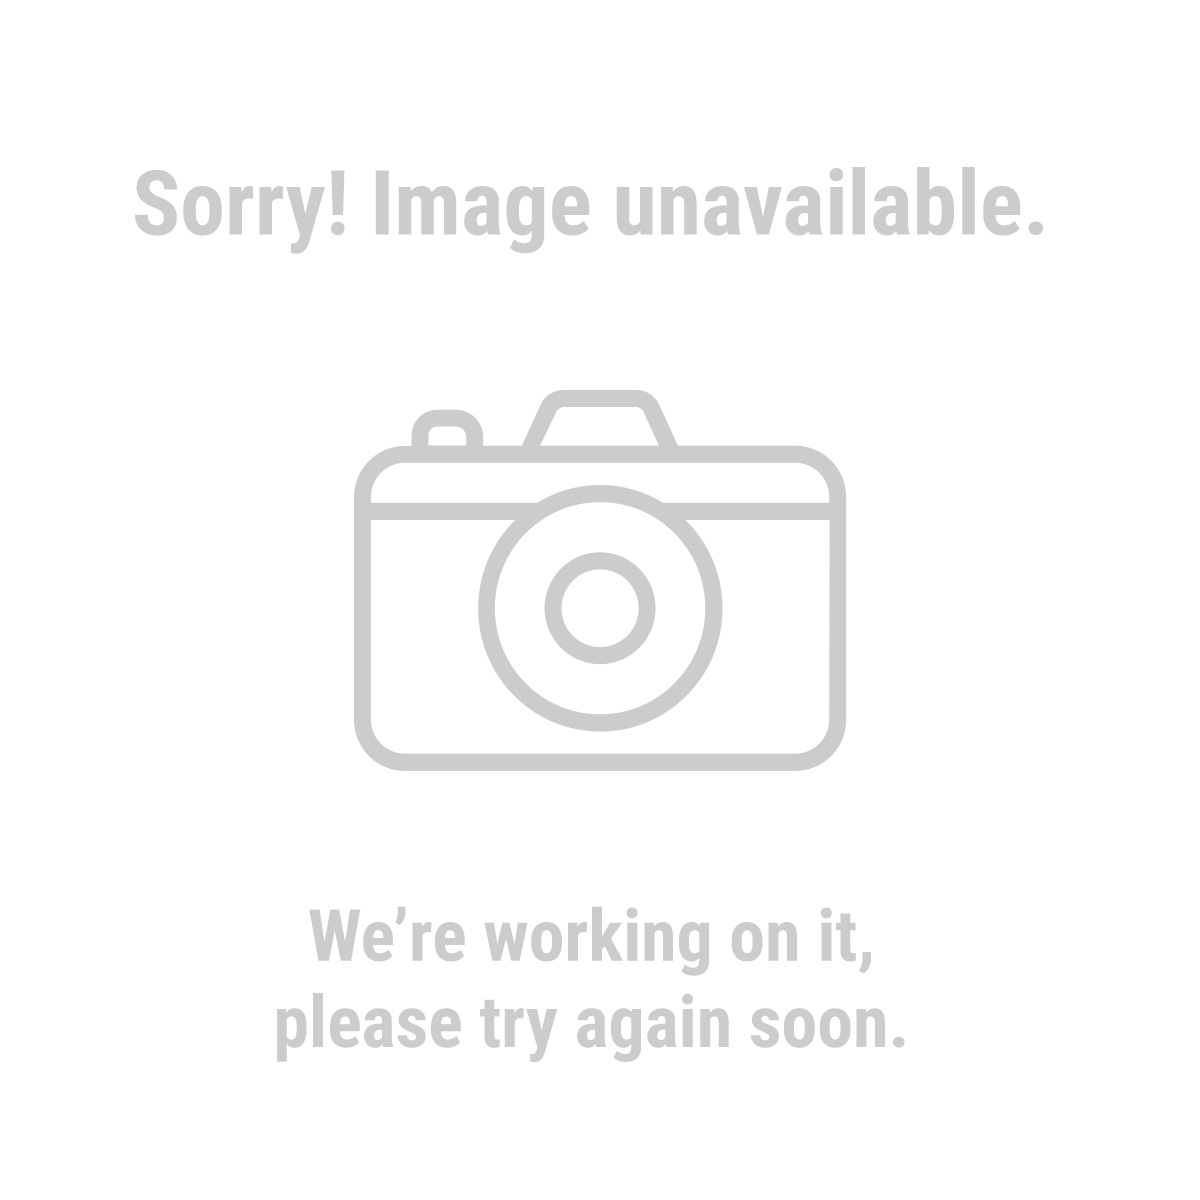 Pittsburgh Automotive 38846 3 Ton Heavy Duty Jack Stands